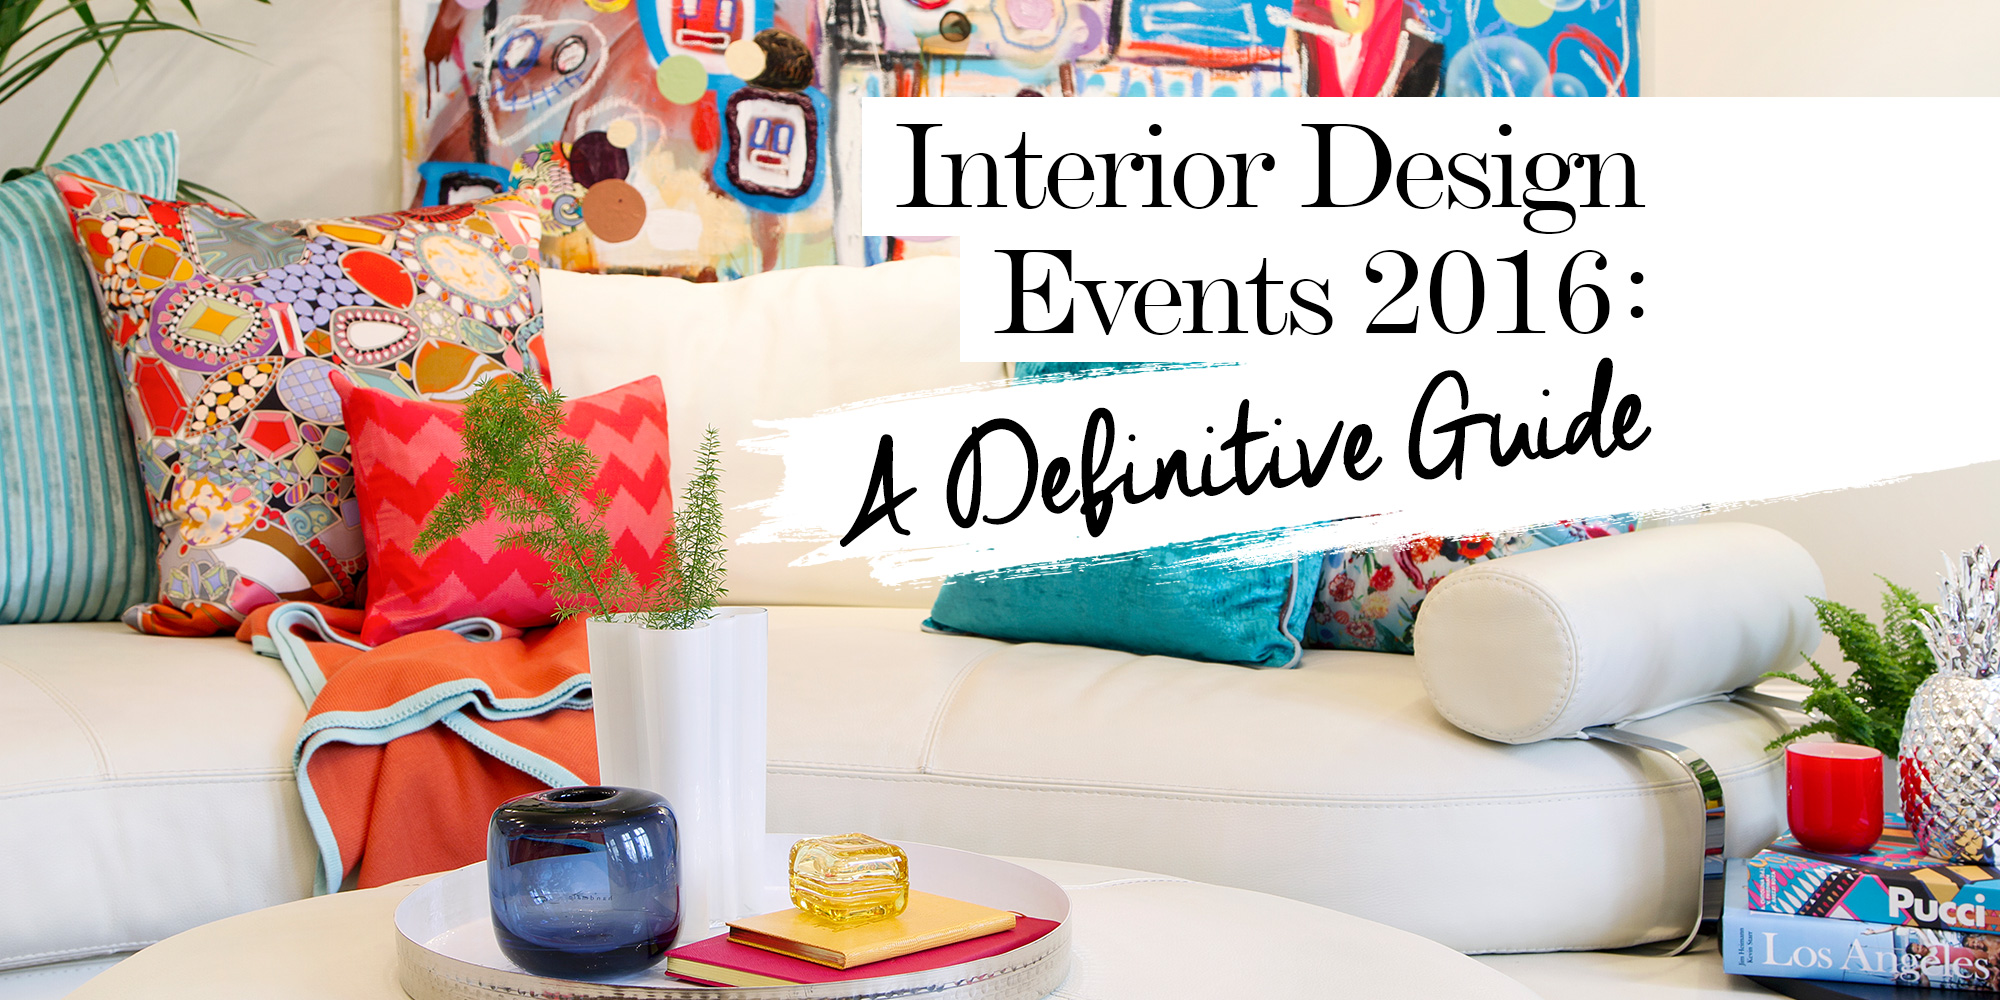 Interior design events 2016 a definitive guide the for Interior design events